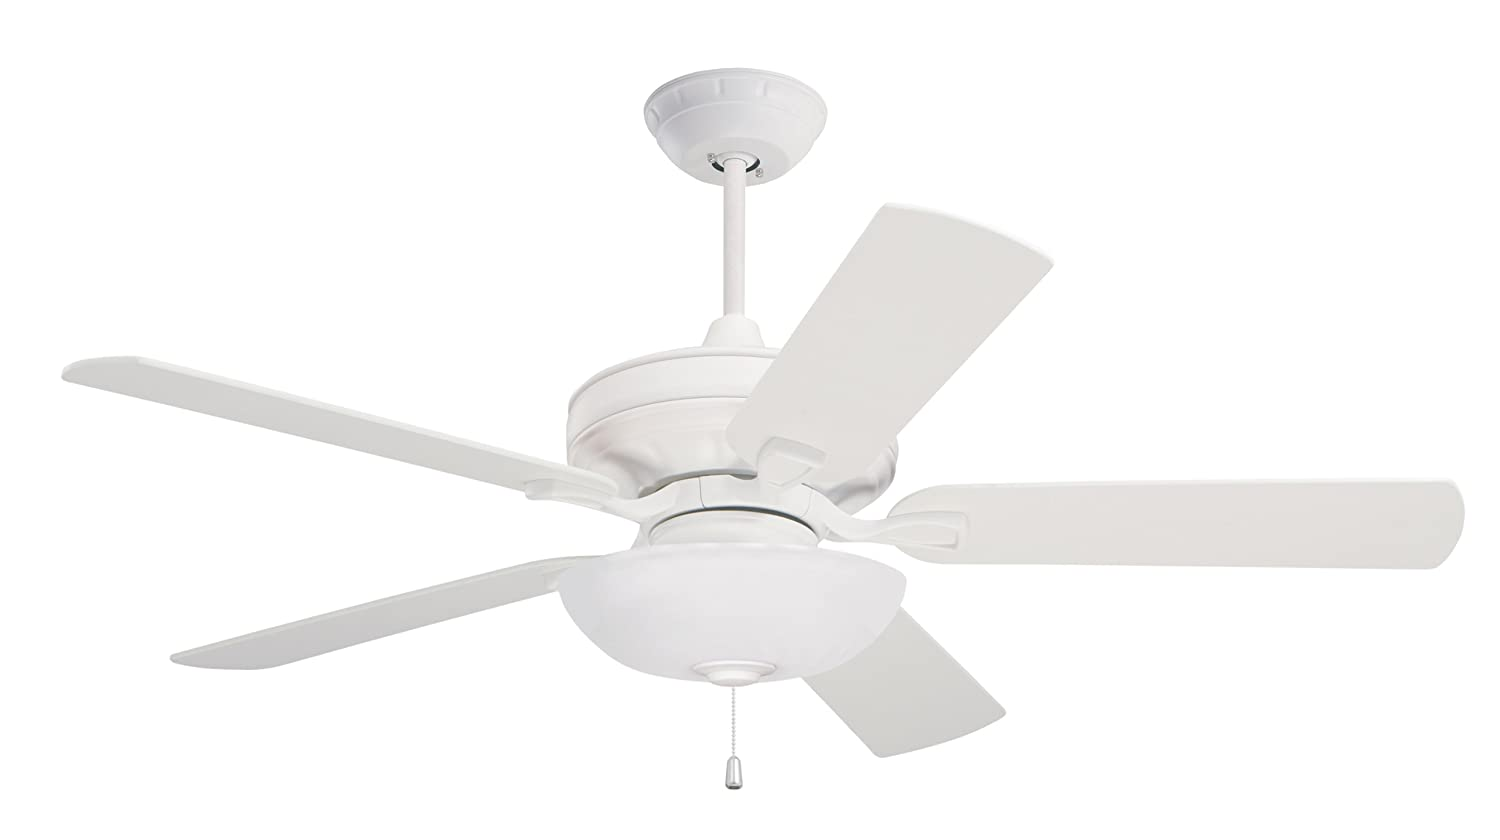 Emerson Ceiling Fans CFSW Bella Indoor Ceiling Fan Inch - White kitchen ceiling fan with light